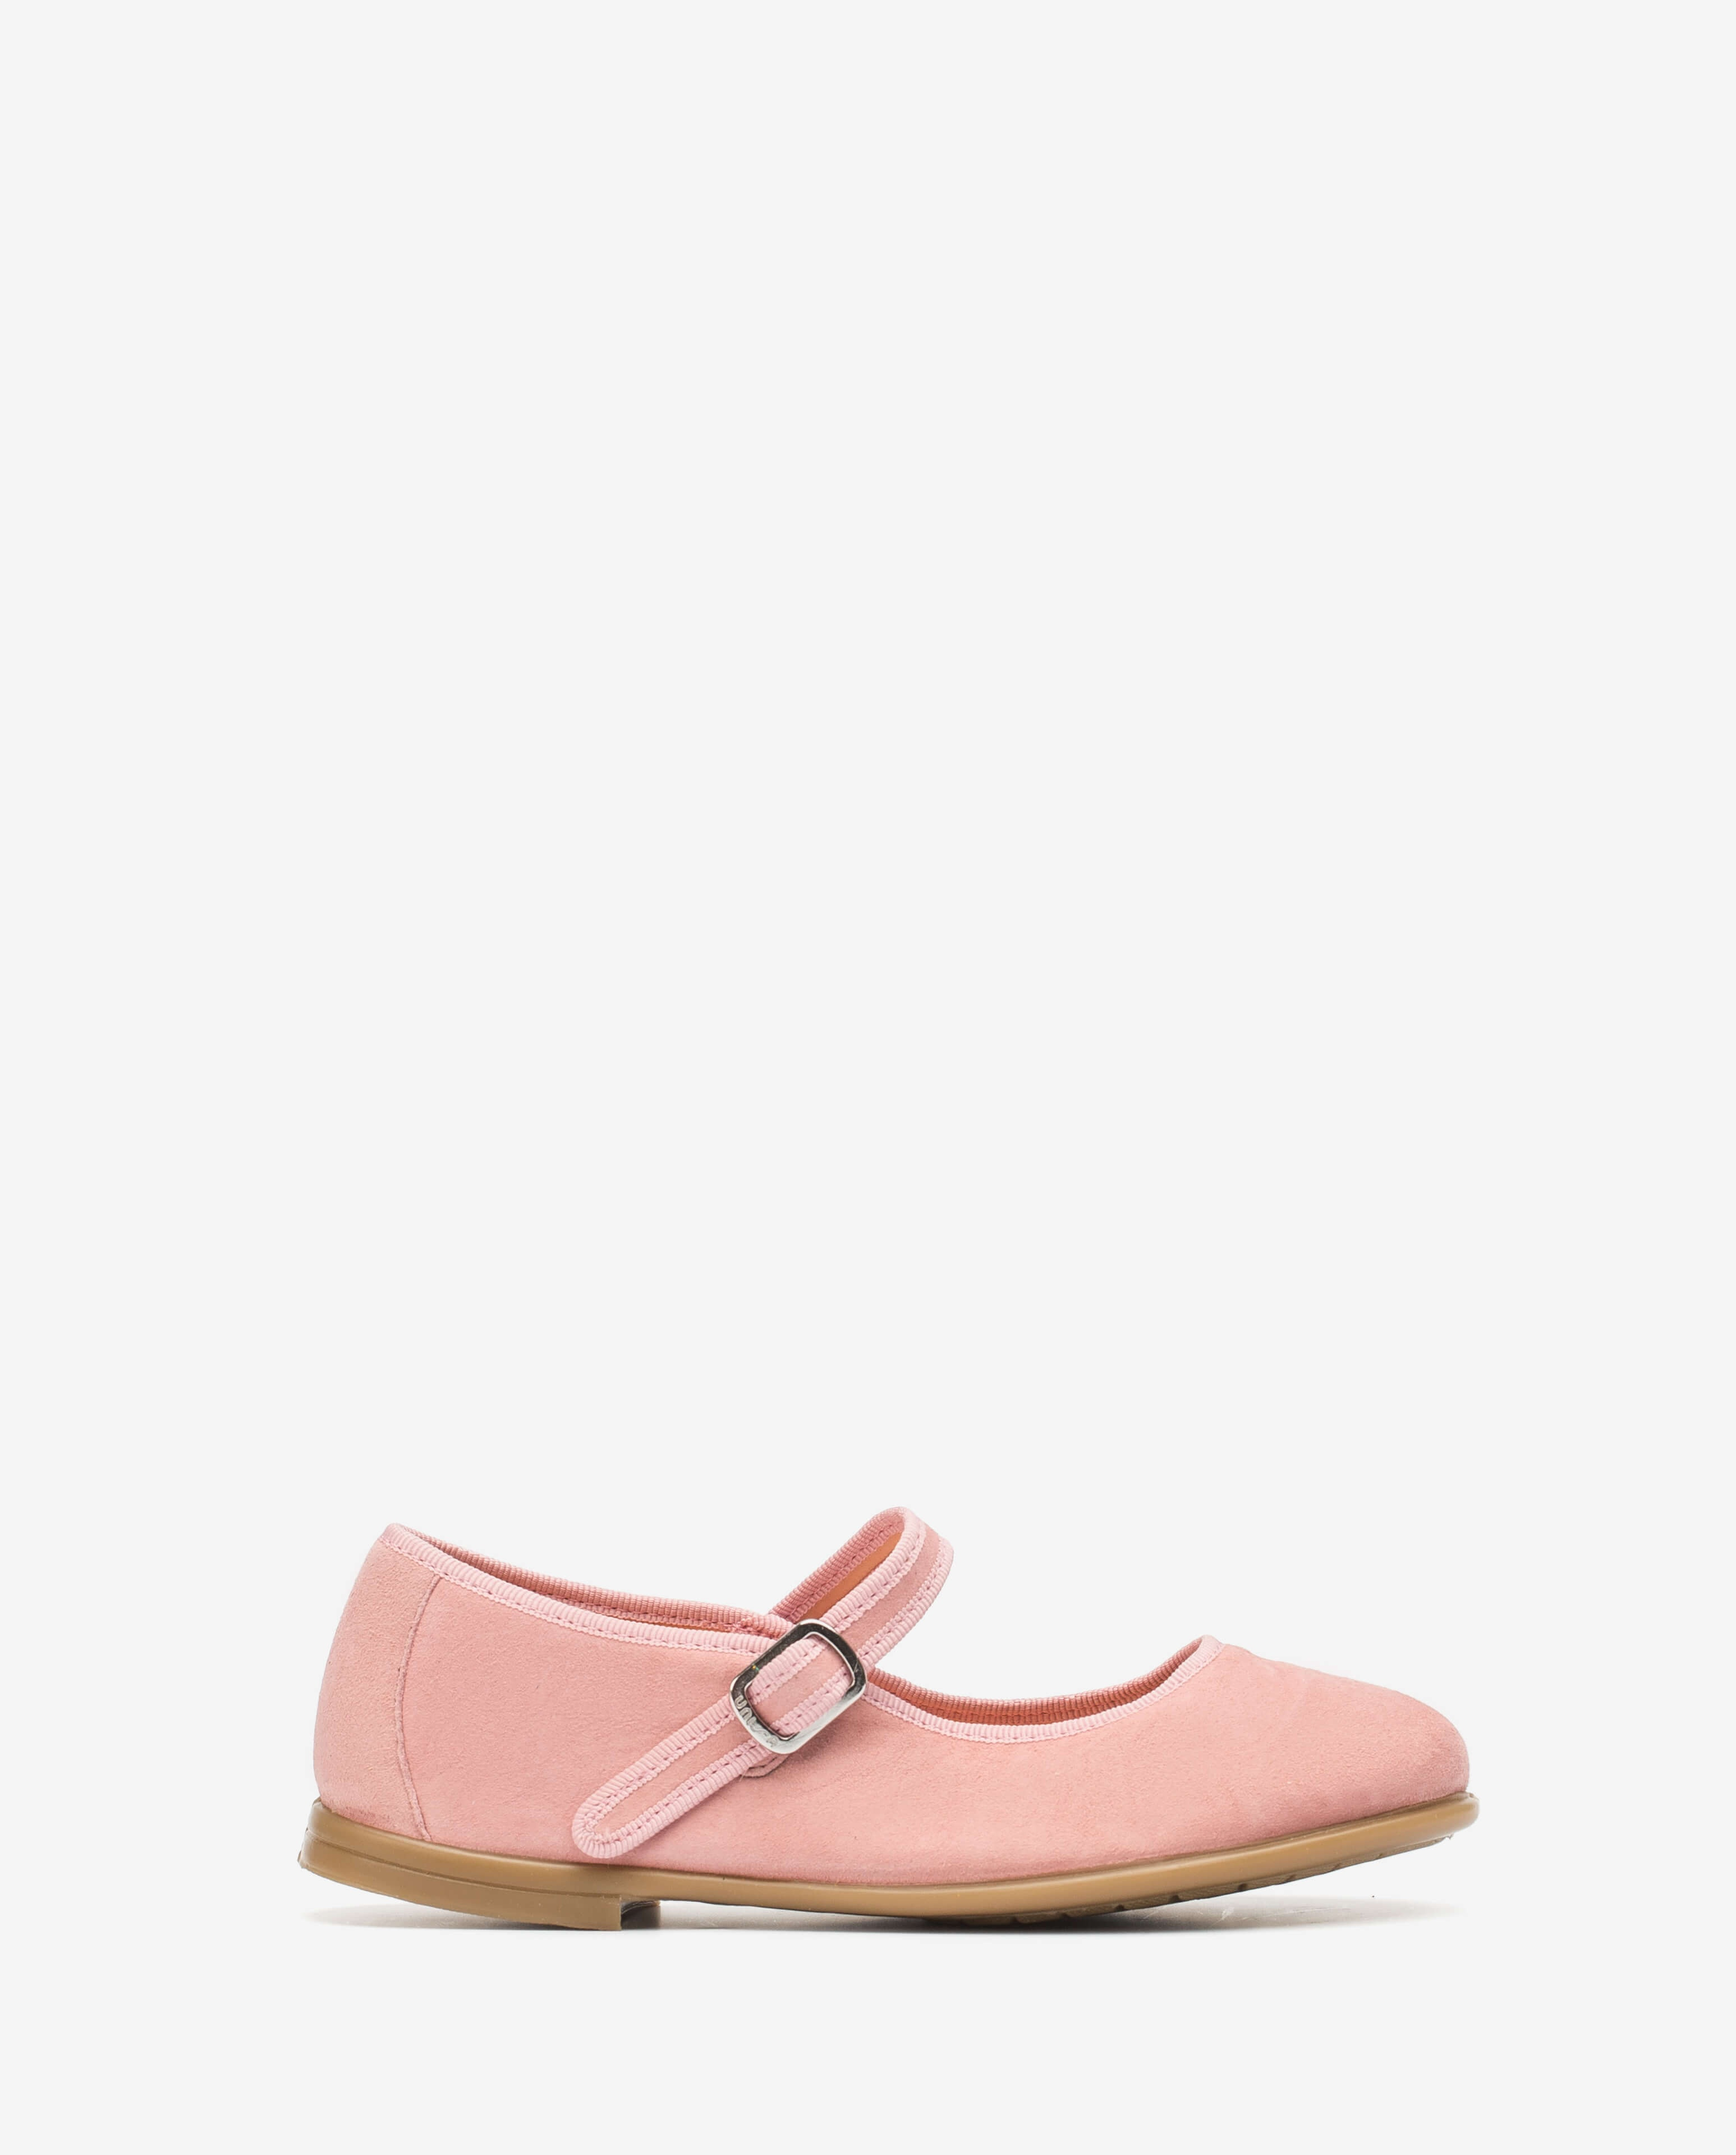 Little girl pink Mary Jane shoes